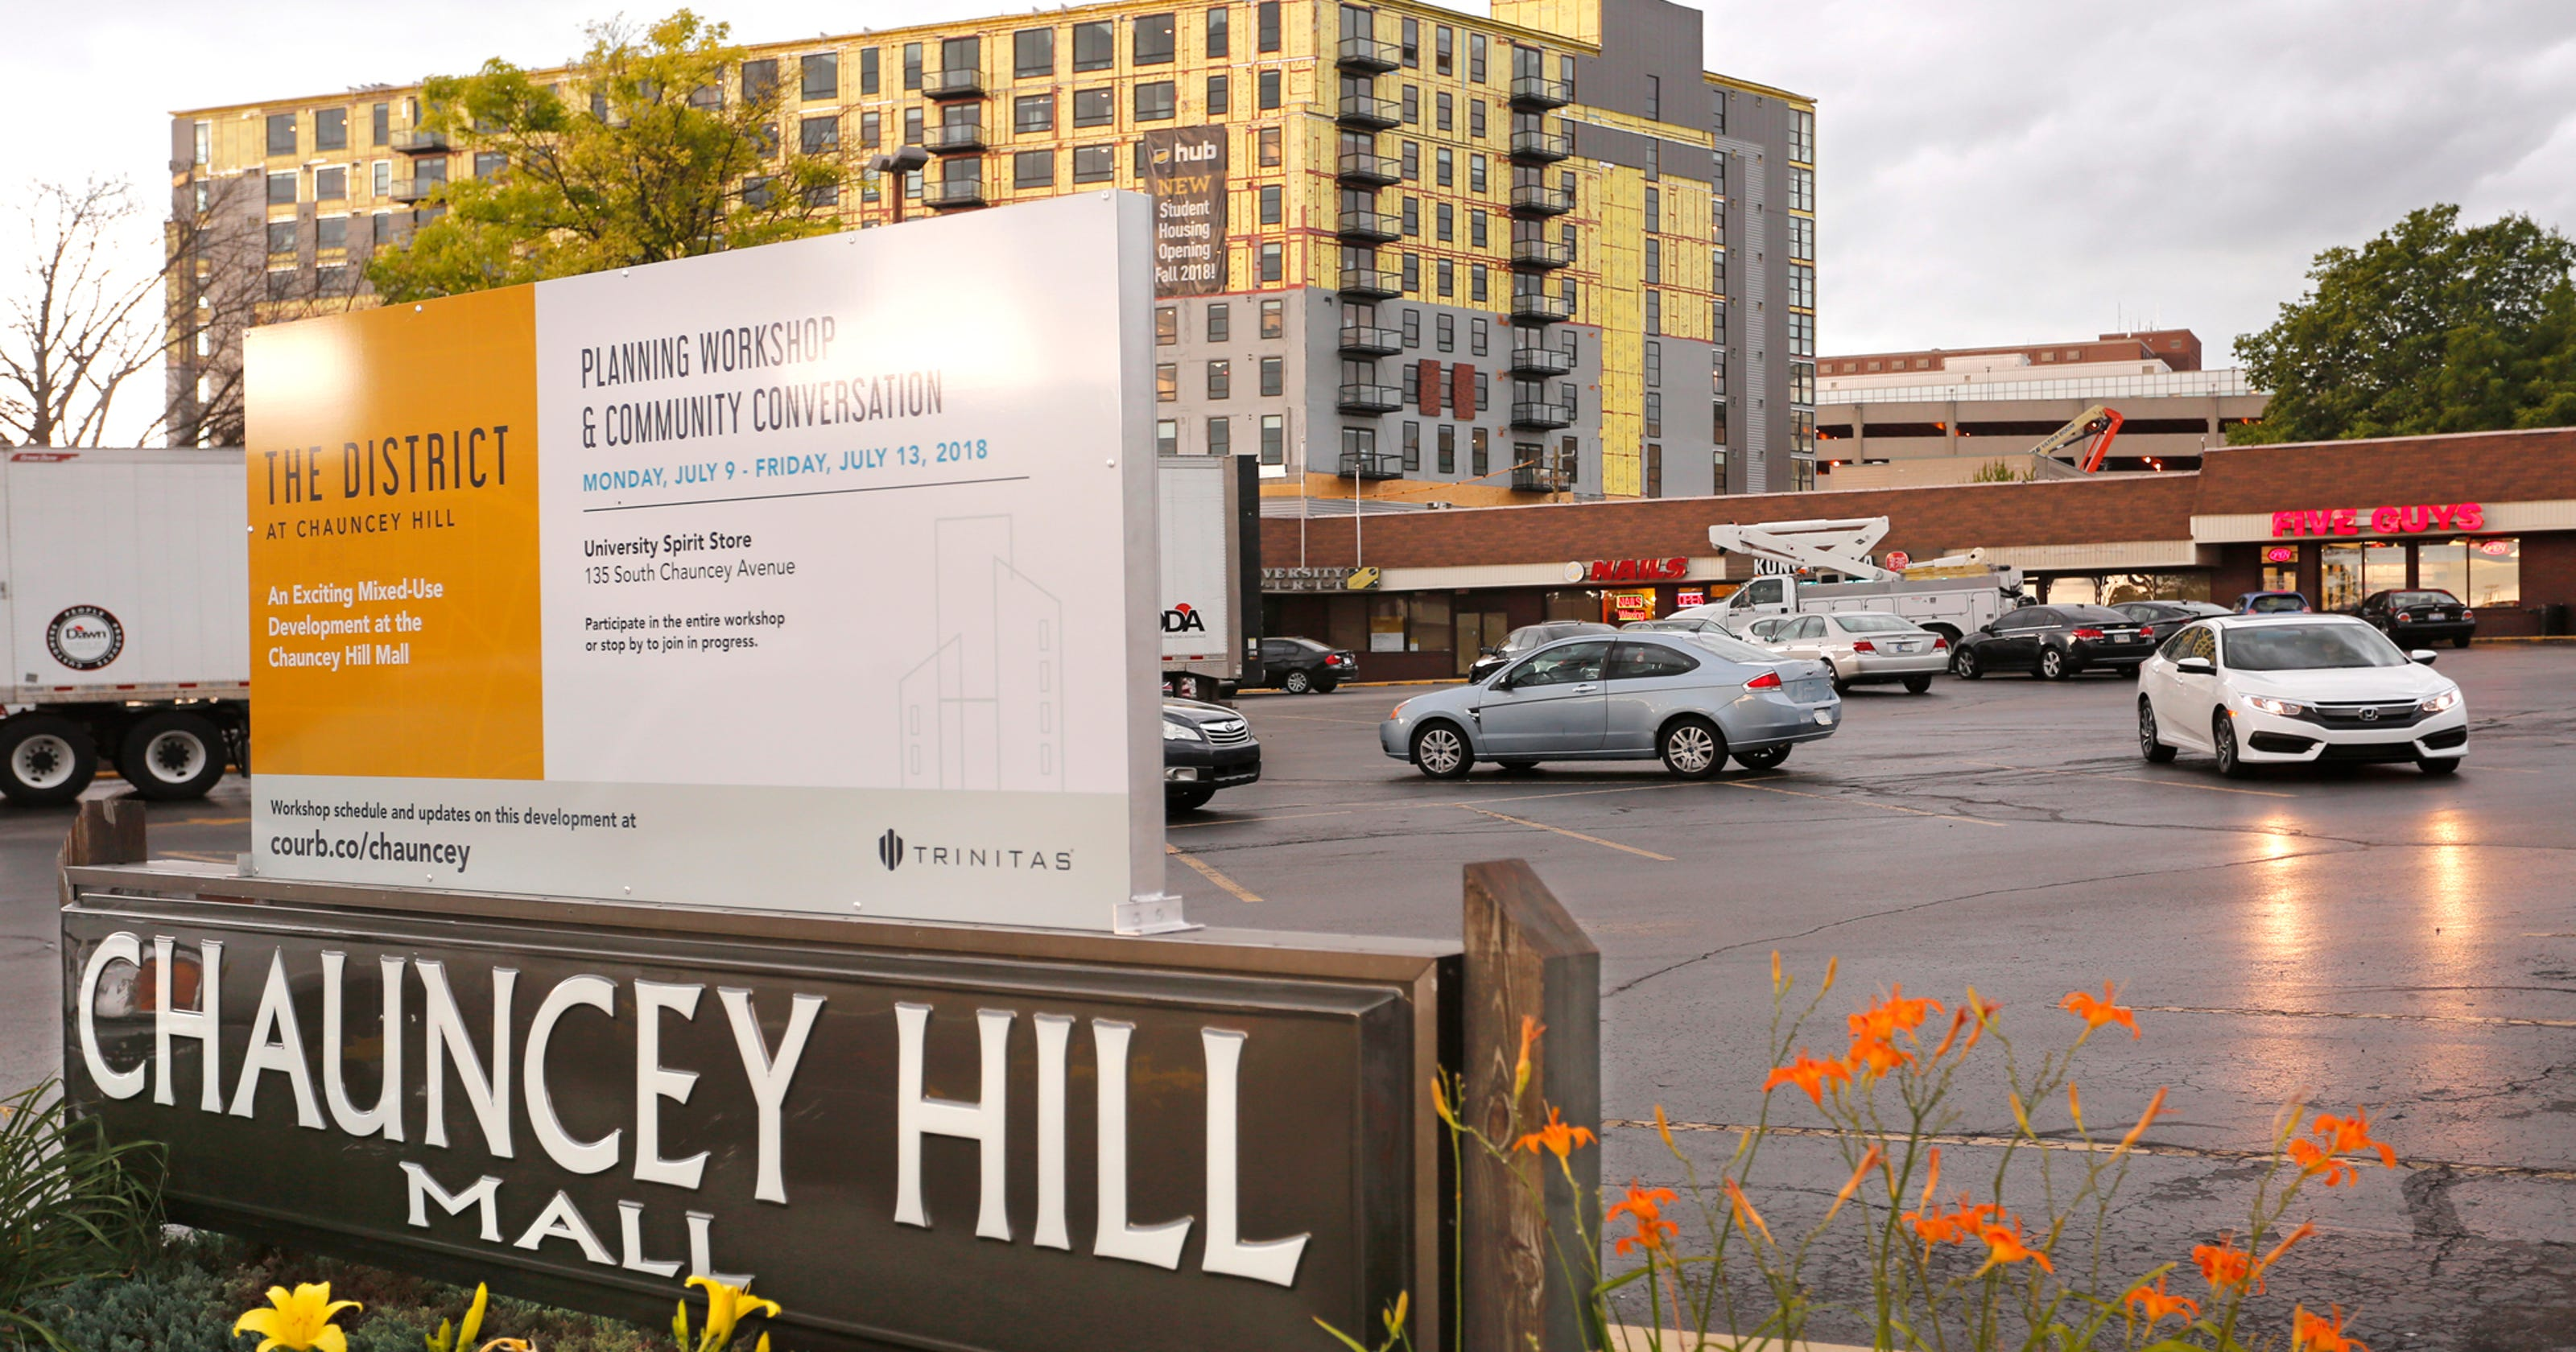 Bangert: Tales from Chauncey Hill Mall, a hangout for generations